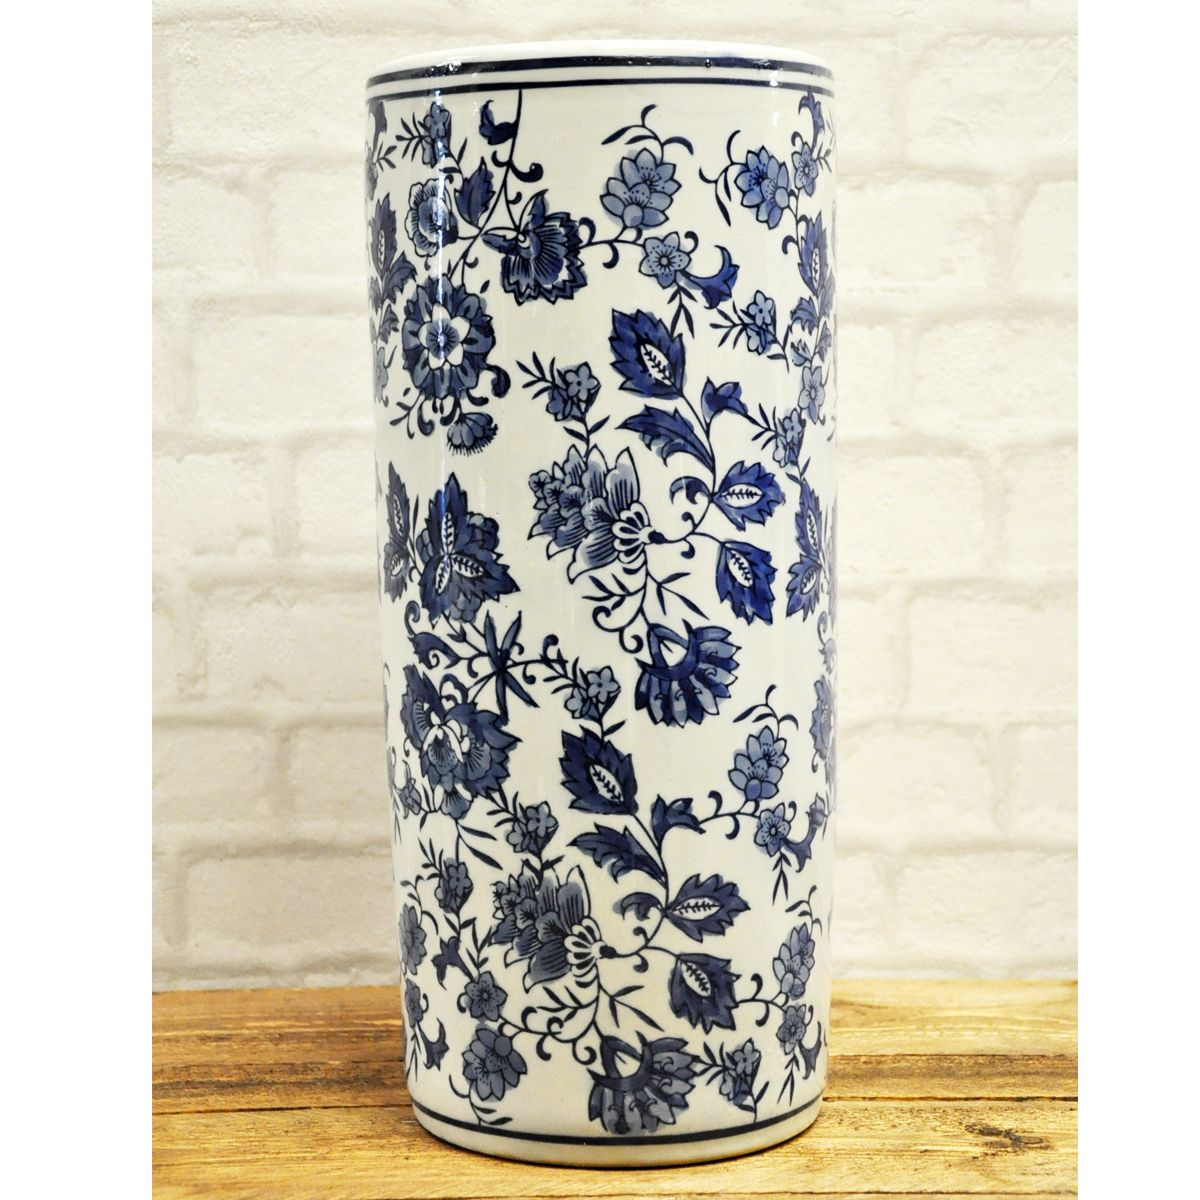 Umbrella Stand Blue And White: Blue & White Vintage Style Ceramic Floral Umbrella Stand